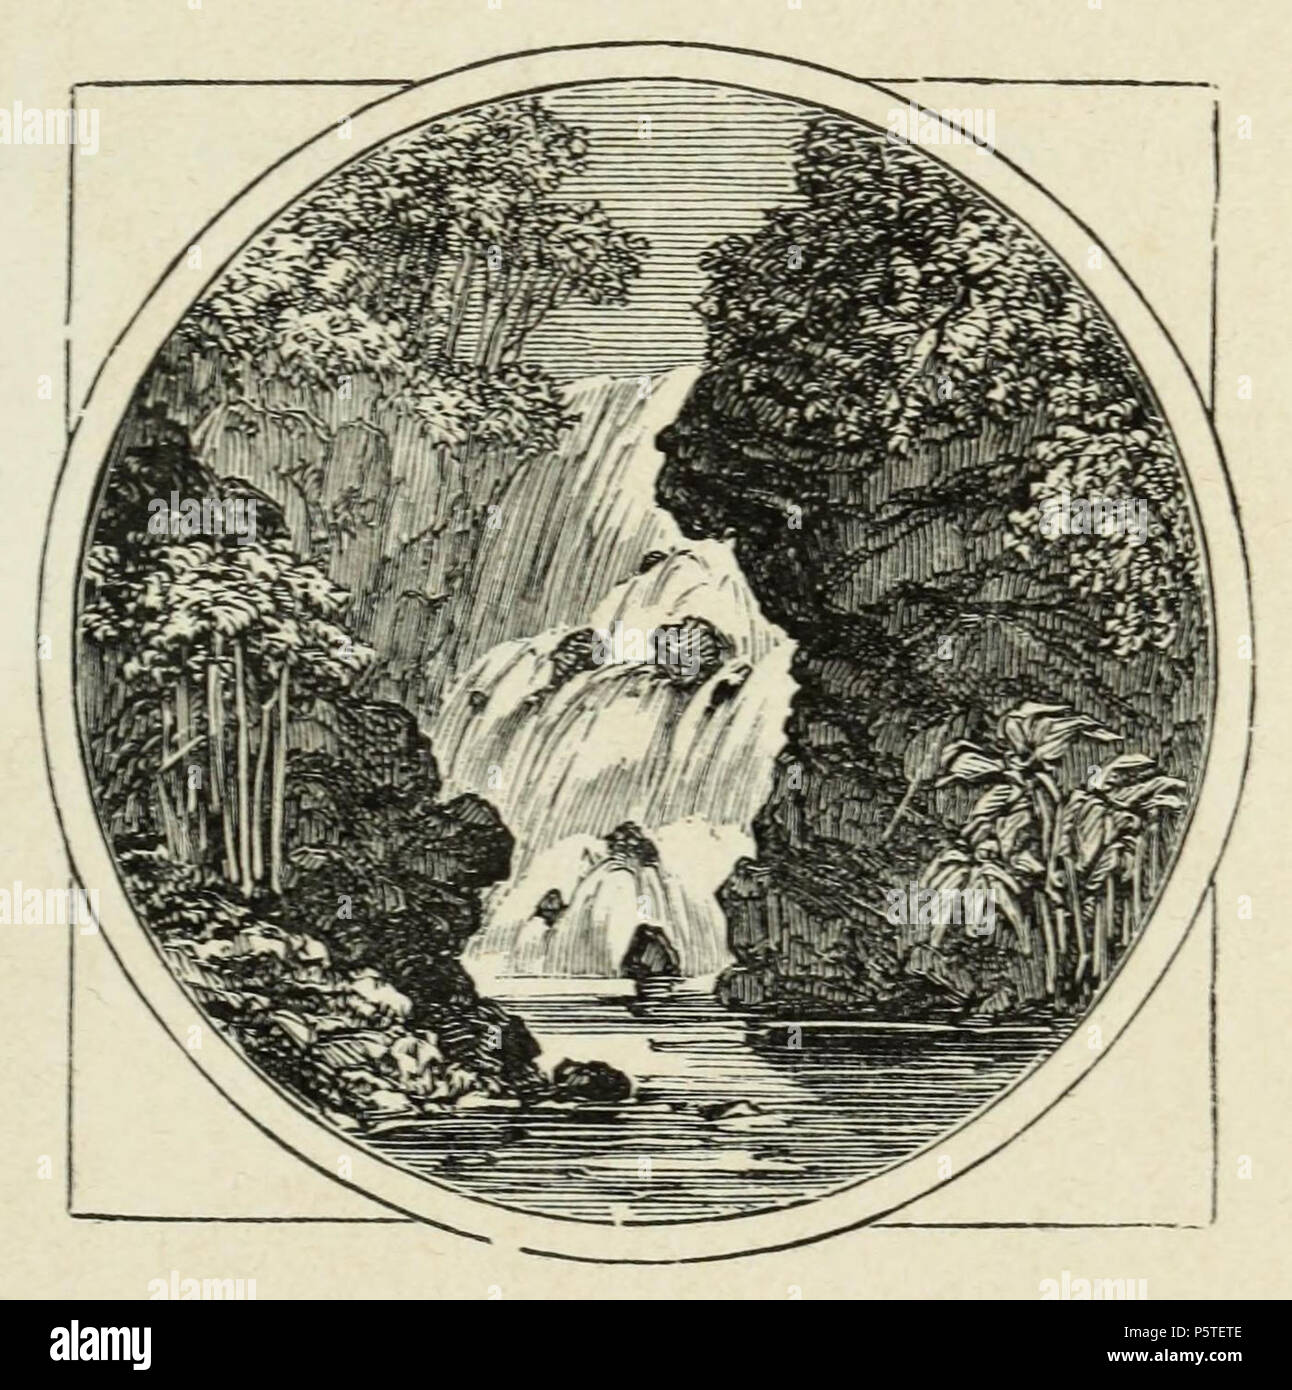 N/A. English: Cascade in the Waialua Valley. Engraved by William James Linton. Drawn on Wood by Miss C. Lane. 1869. Engraved by   William James Linton (1812–1897)   Alternative names Linton; Hattie Brown; A. N. Broome; Abel Reid; C. Honeysuckle; W. J. Linton; William Linton  Description British-American engraver and painter  Date of birth/death 7 December 1812 29 December 1897  Location of birth/death London Hamden  Authority control  : Q2066530 VIAF:10221769 ISNI:0000 0000 8089 7858 ULAN:500015928 LCCN:n50050814 NLA:36575808 WorldCat    Drawn on Wood by Miss C. Lane 279 Cascade in the Wai - Stock Image